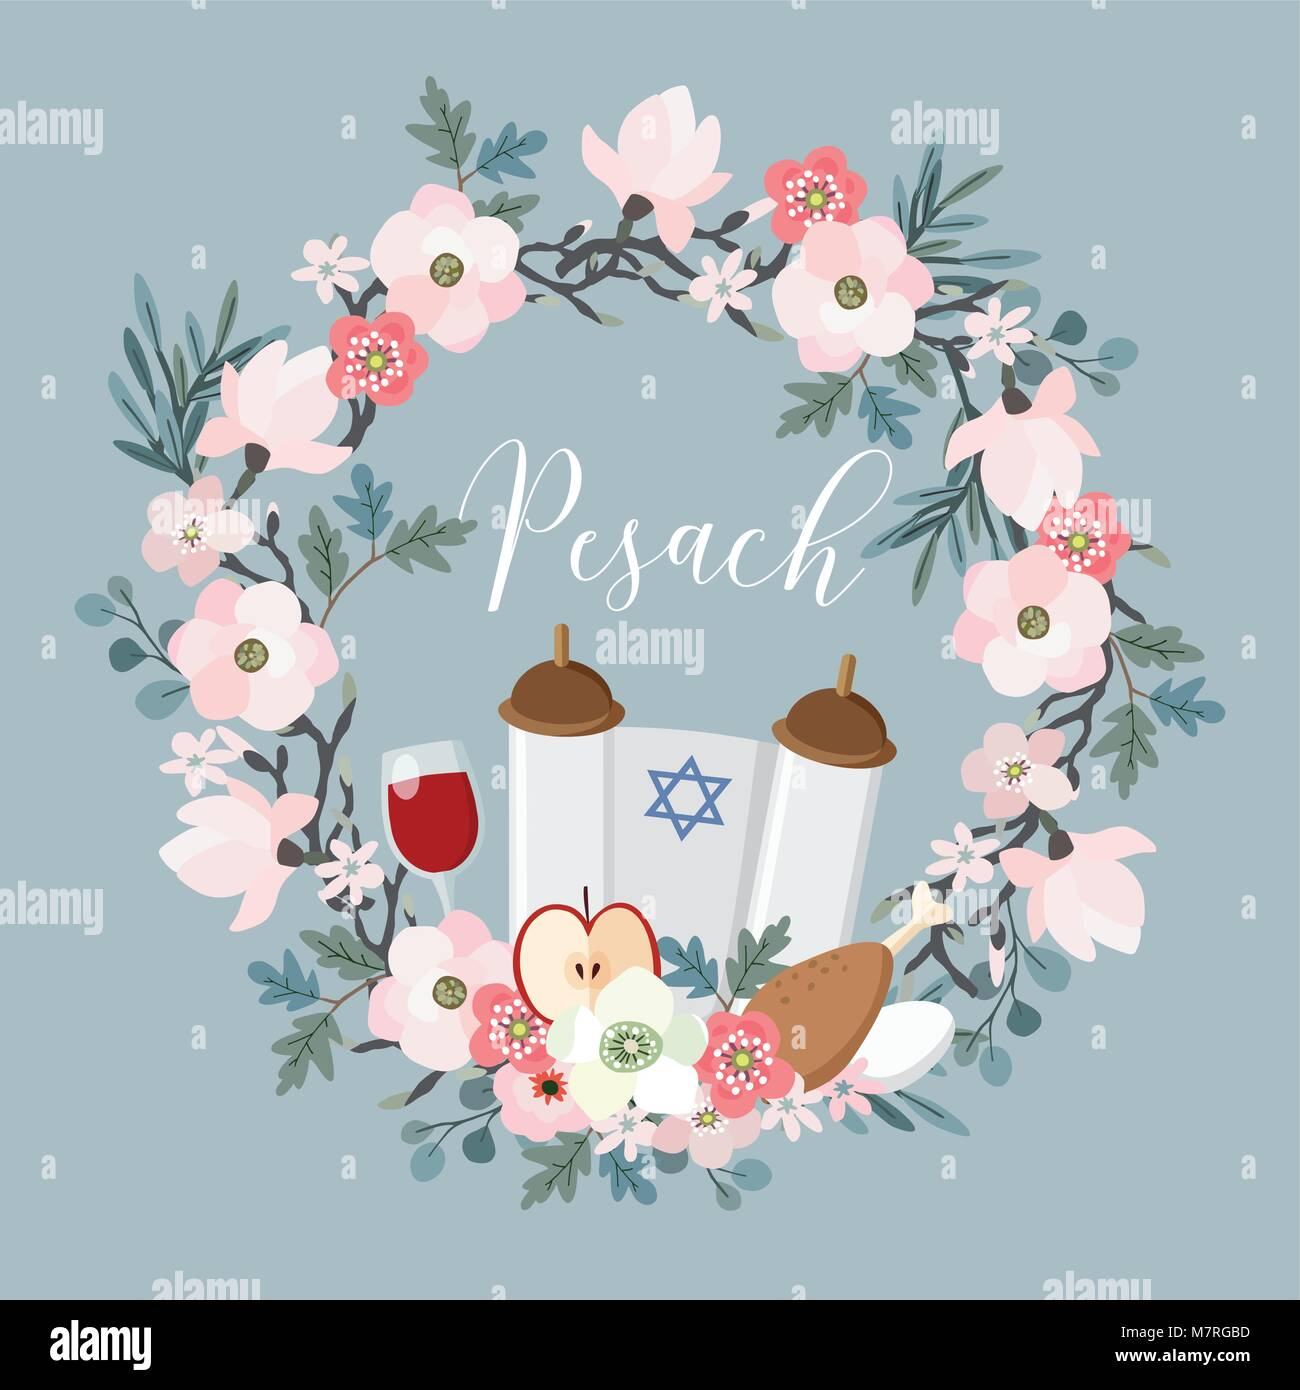 Pesach passover greeting card hand drawn floral wreath with torah pesach passover greeting card hand drawn floral wreath with torah stock vector art illustration vector image 176924033 alamy m4hsunfo Image collections